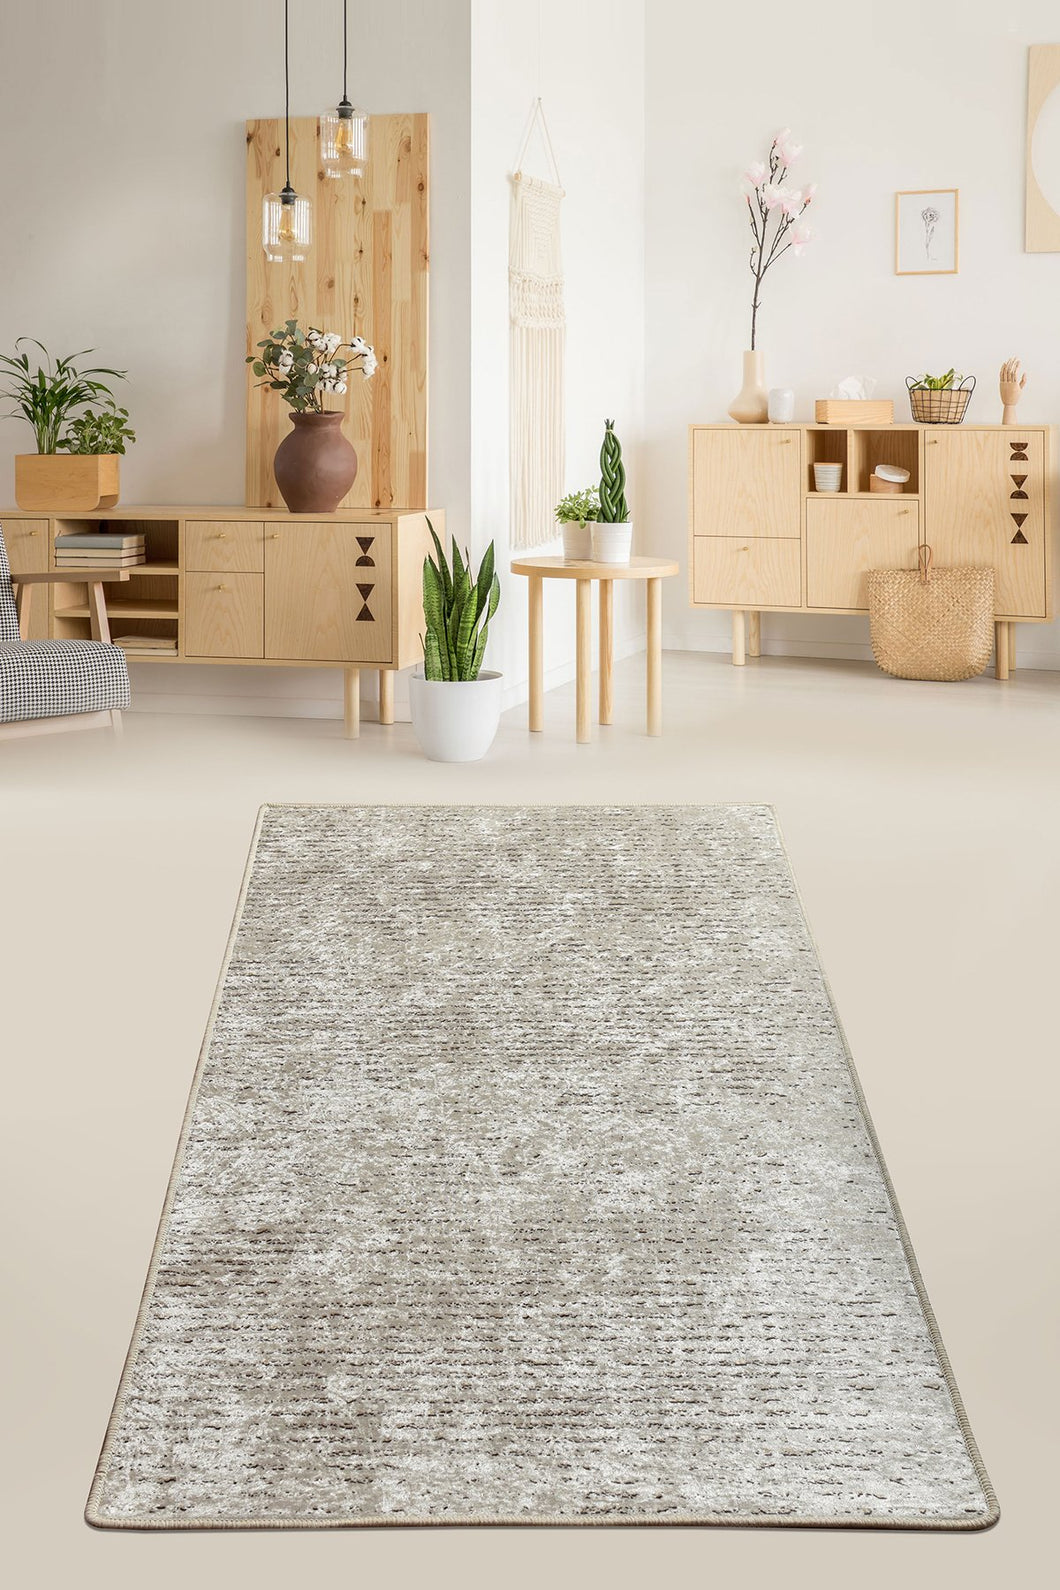 Antdecor Suolo Beige Decorative Carpet 140X190 Cm